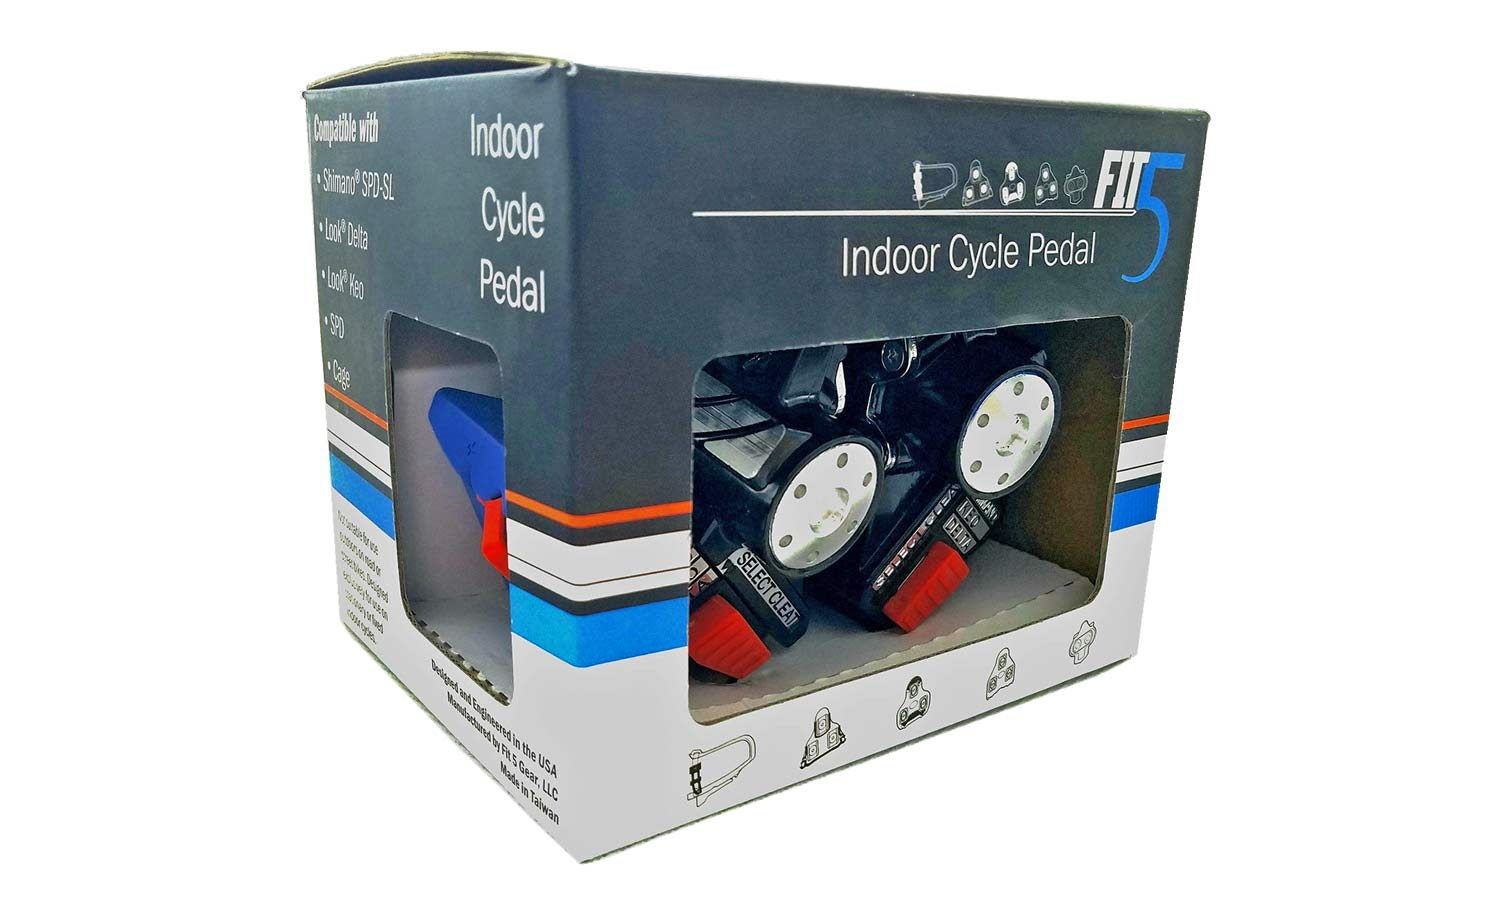 Fit5 universal Indoor Cycle Pedals; Look Delta or Keo, Shimano SPD-SL or SPD, toe-clip compatibility,retail box